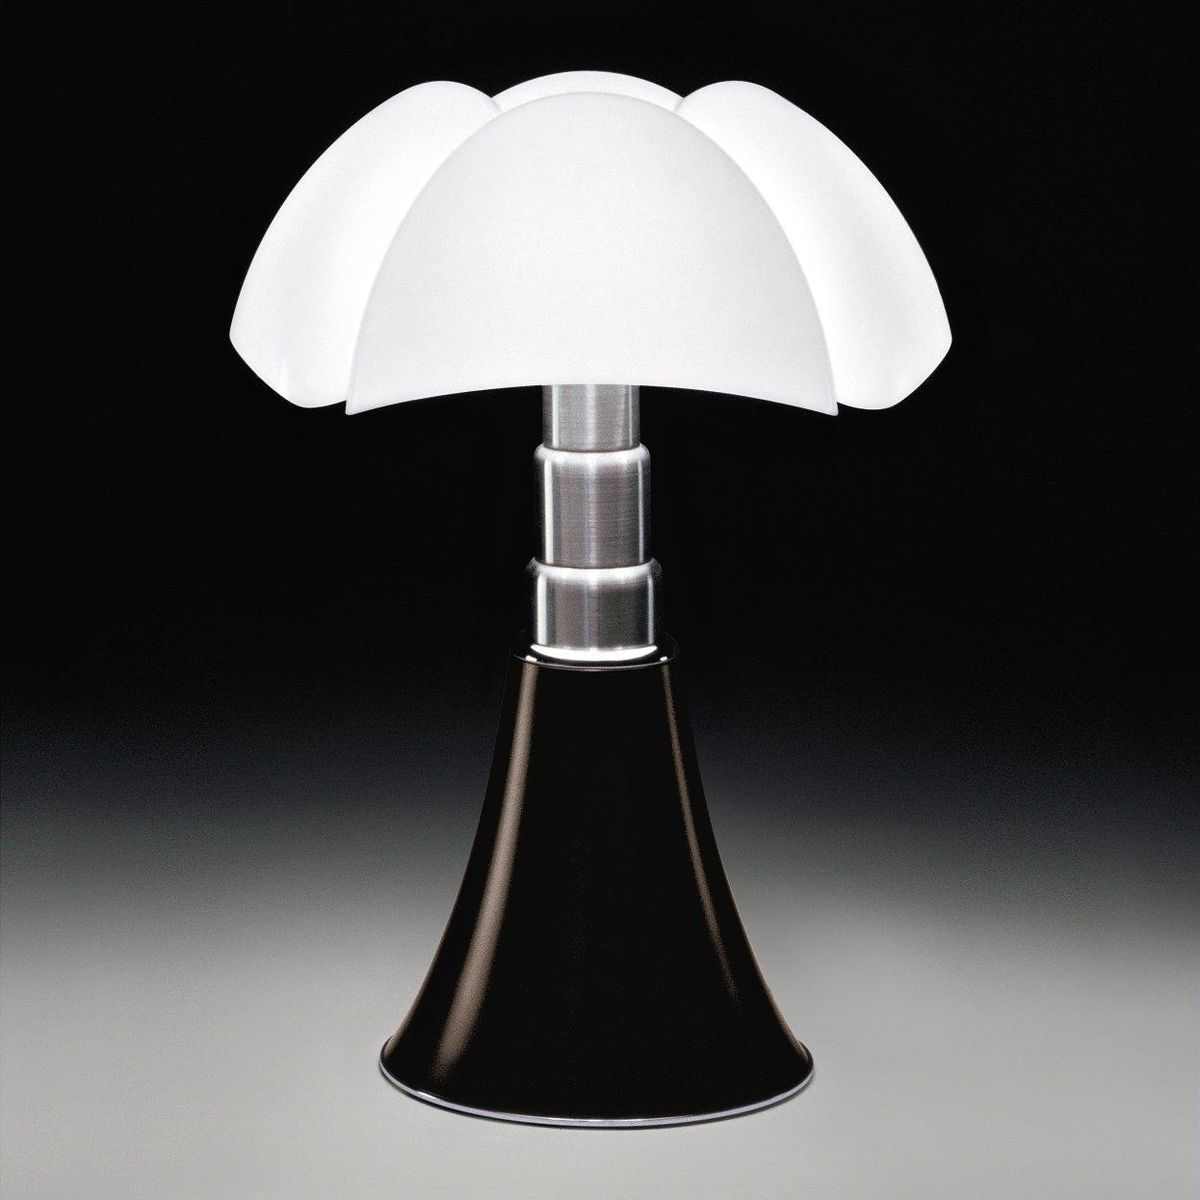 Favori Pipistrello Table Lamp | Martinelli Luce | AmbienteDirect.com ST54